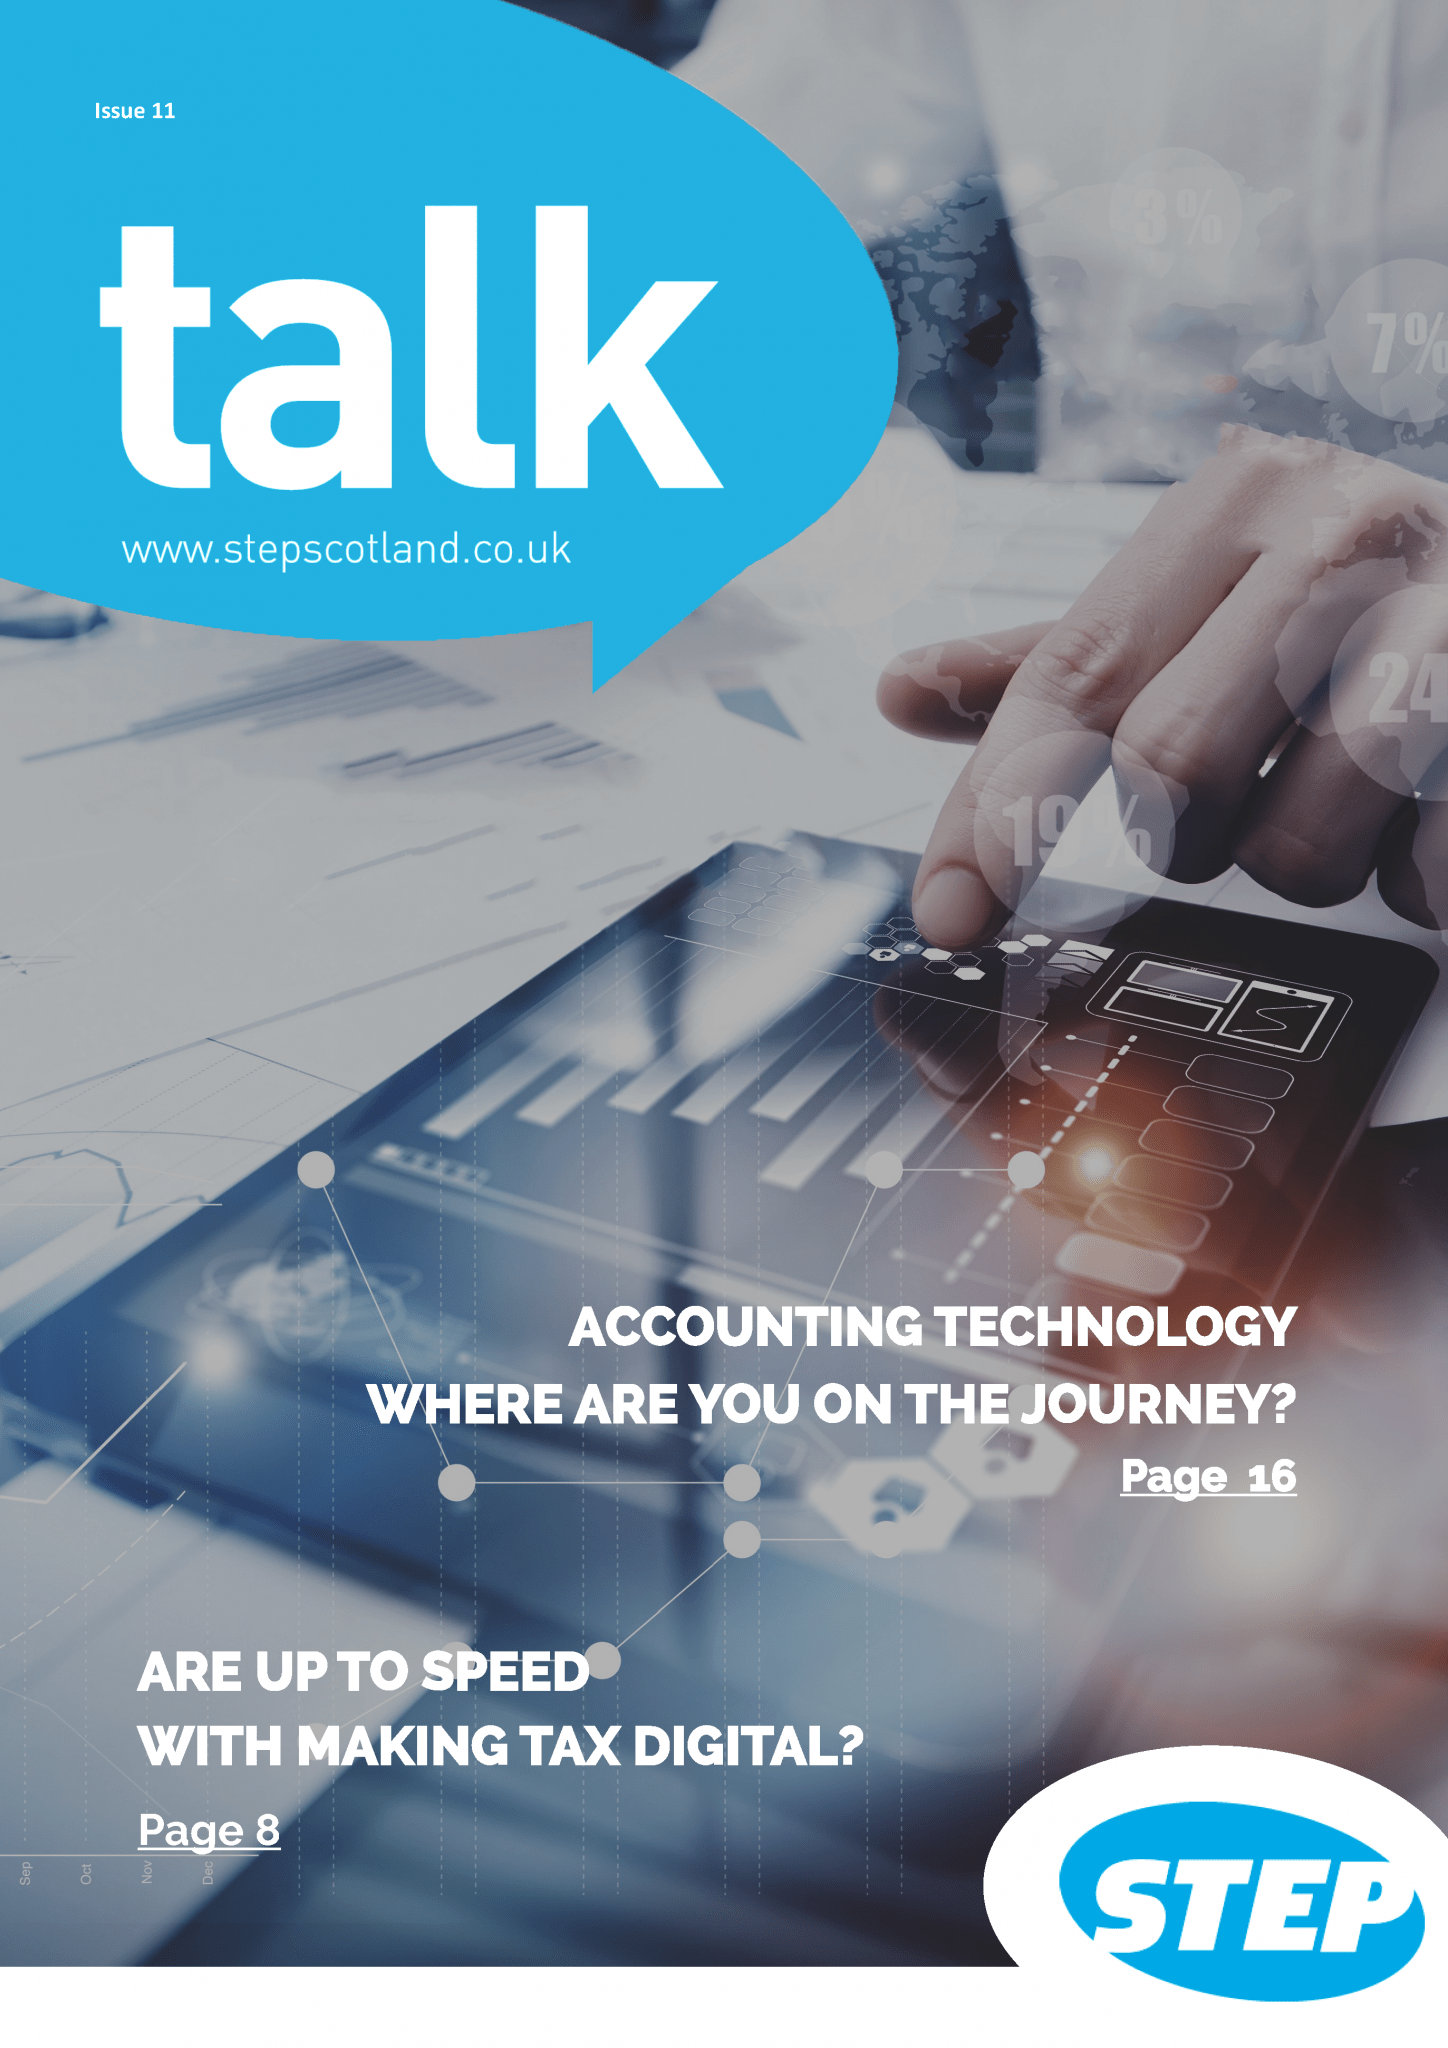 Issue 11 TALK Business Support Magazine